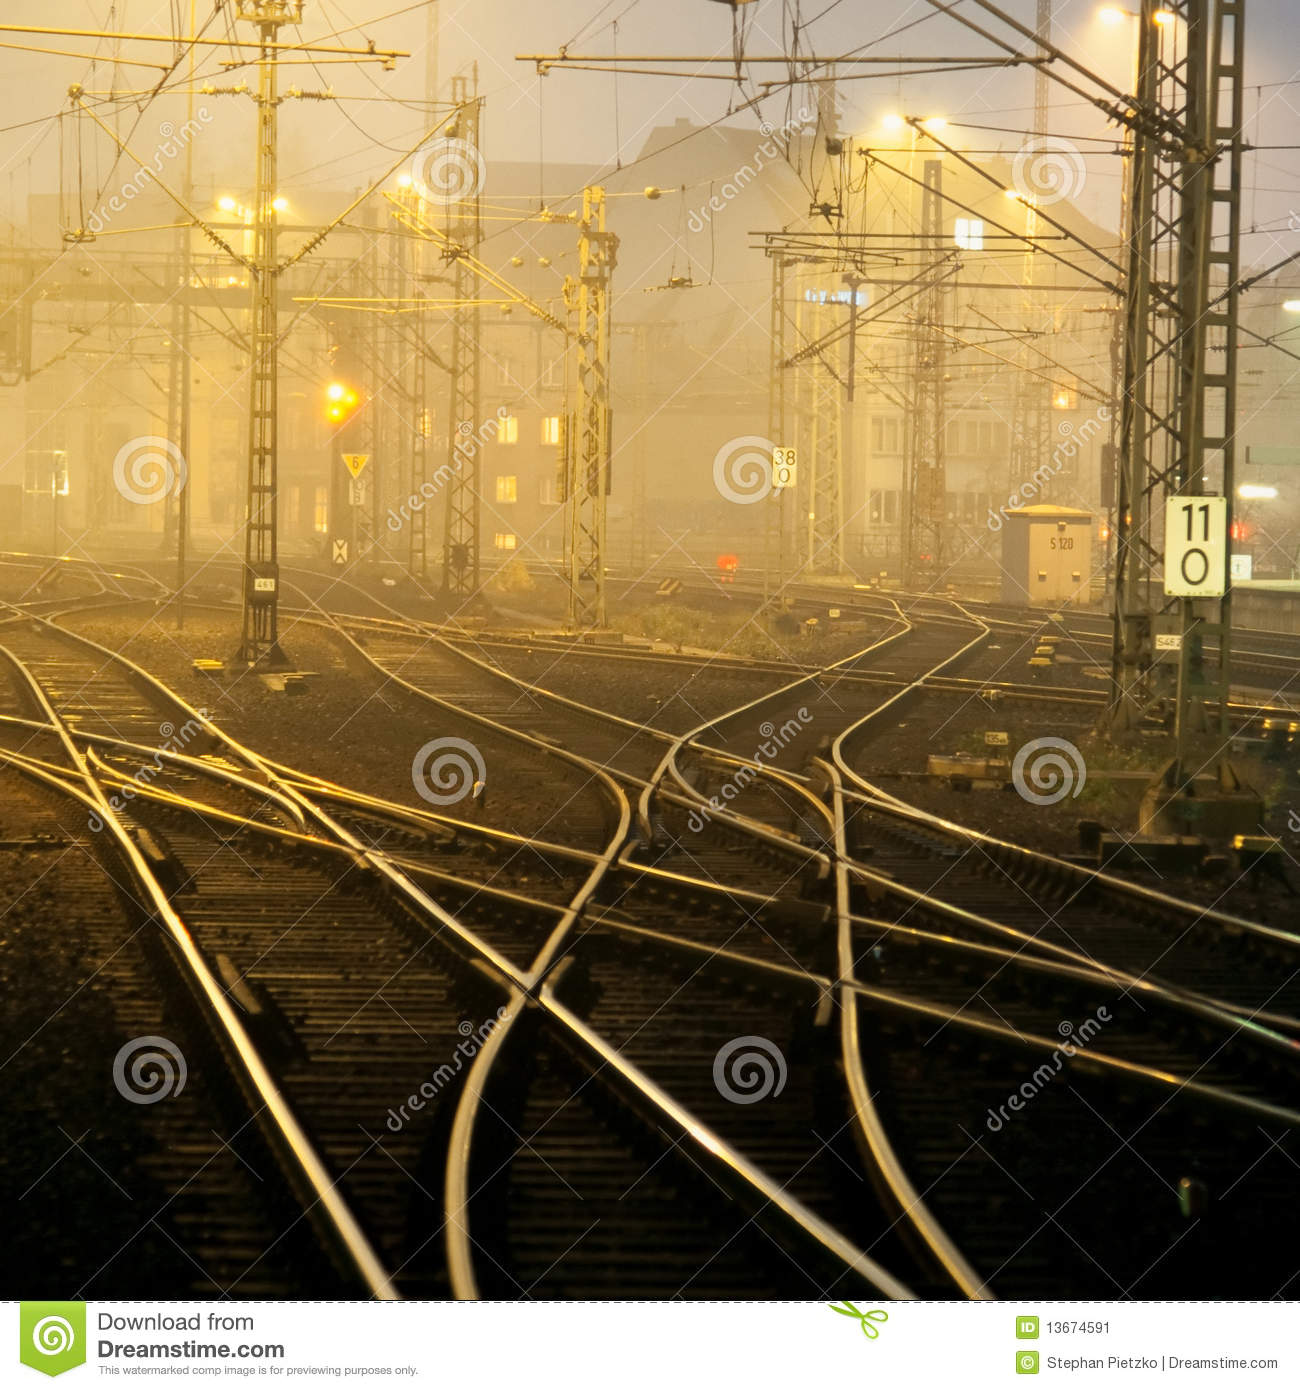 Download Confusing railway tracks stock image. Image of junction - 13674591